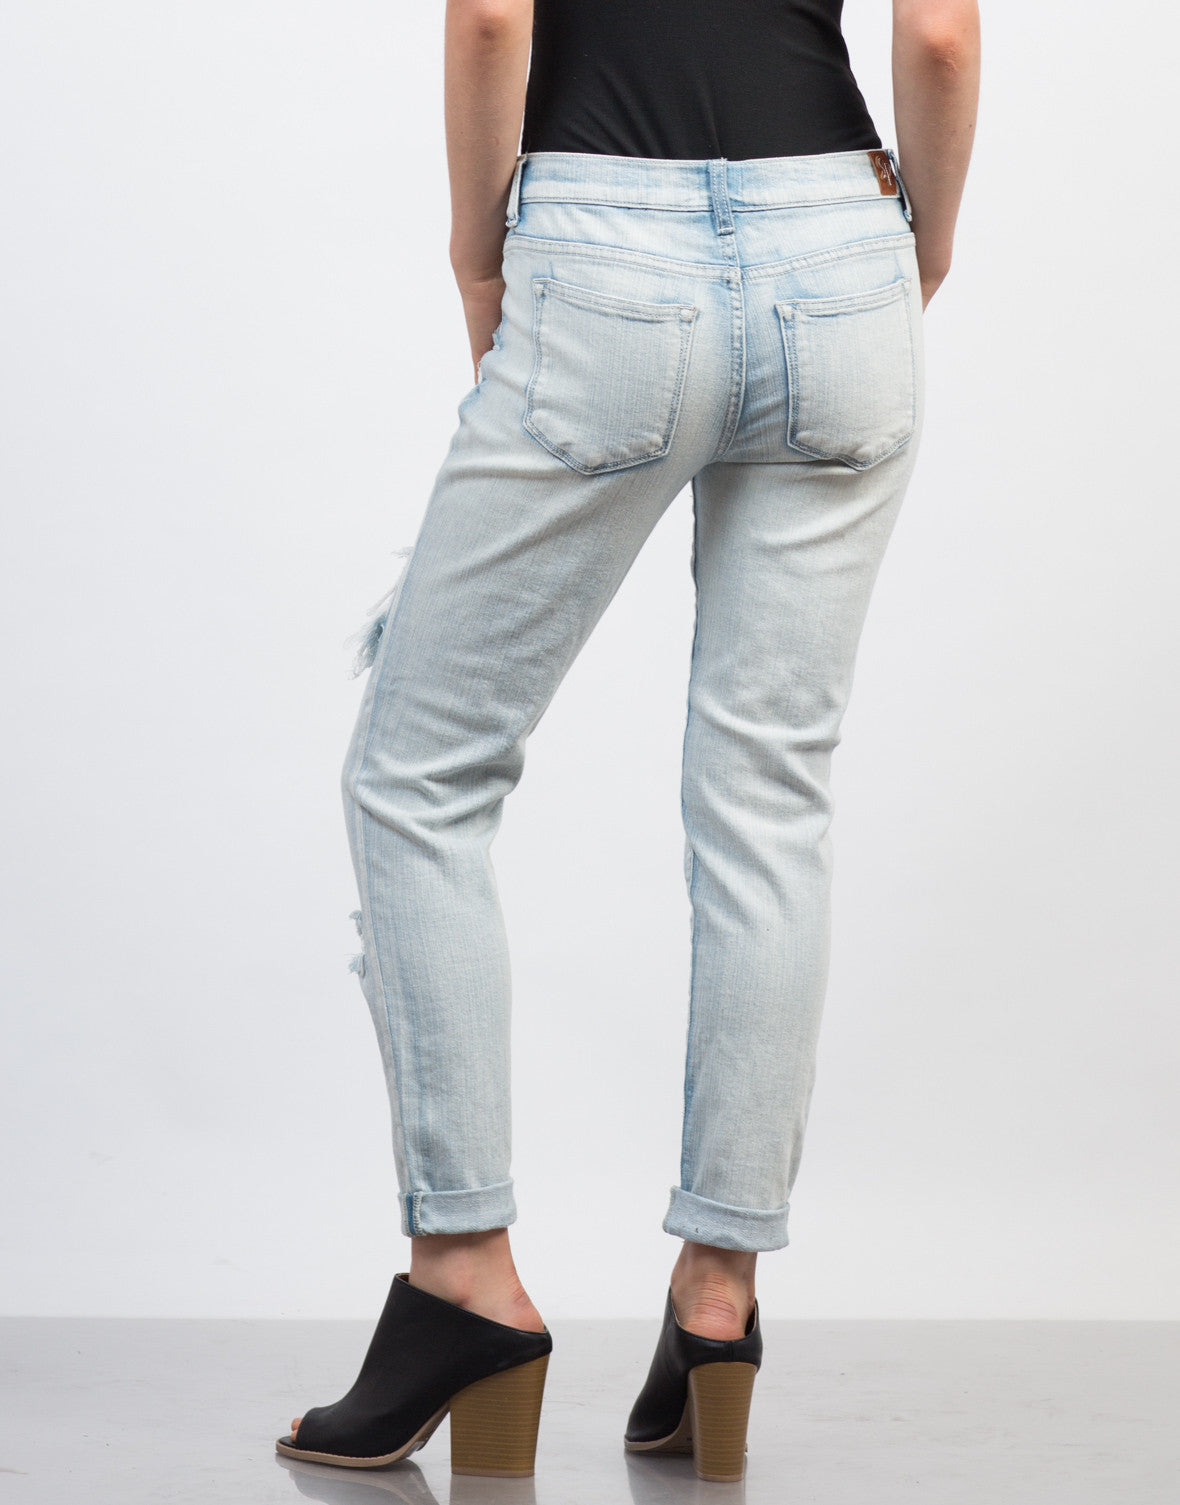 Back View of Light Washed Denim Boyfriend Jeans